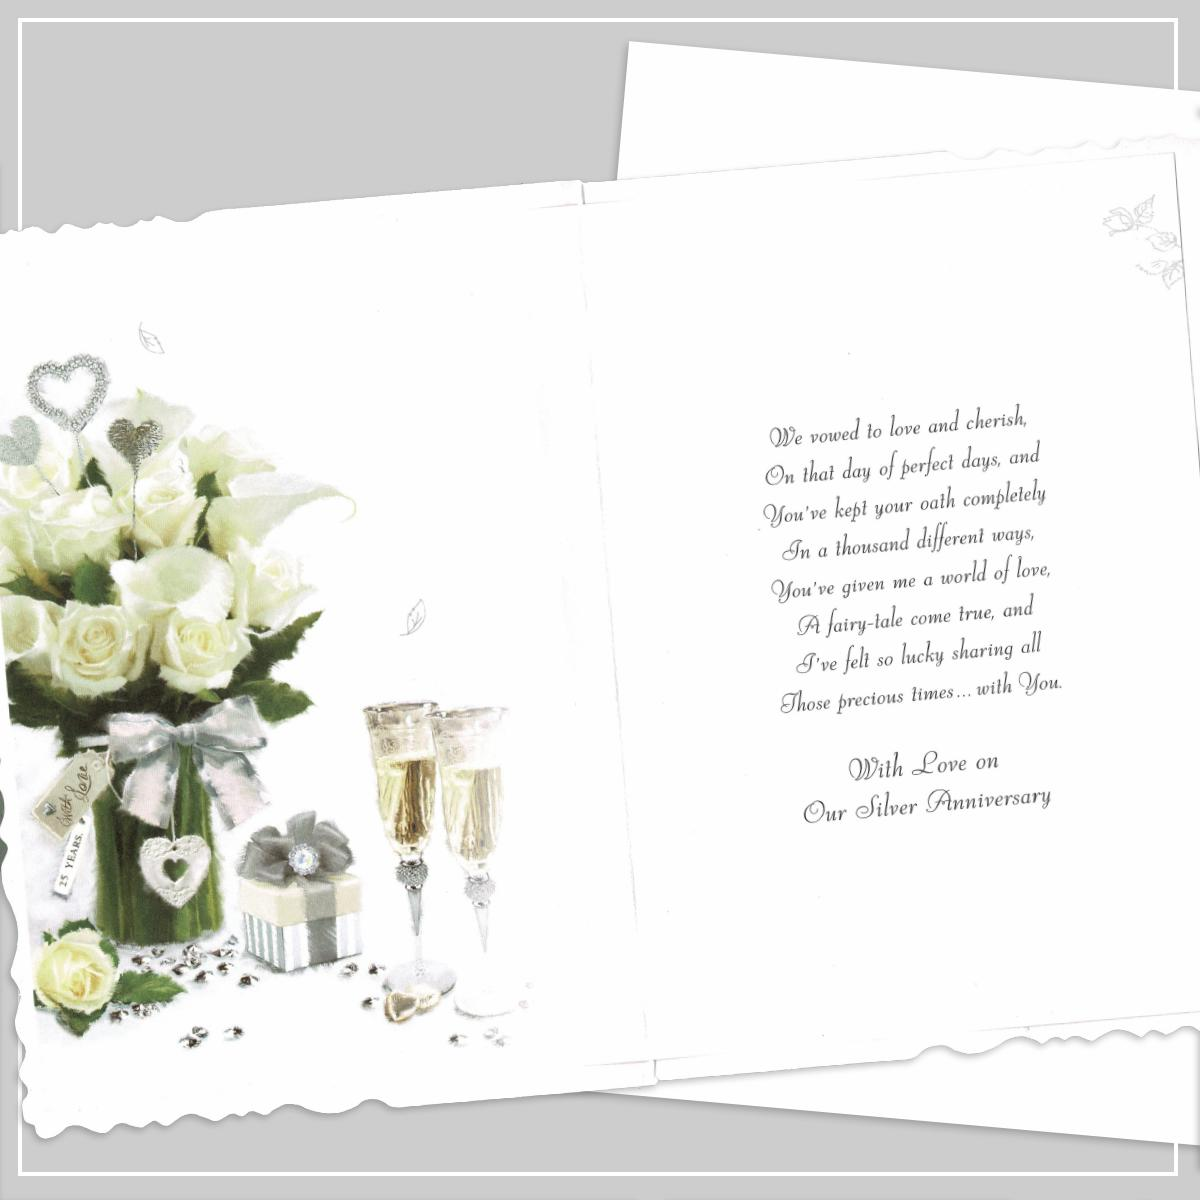 Inside Of Wife 25th Anniversary Card Showing Layout And Printed Text